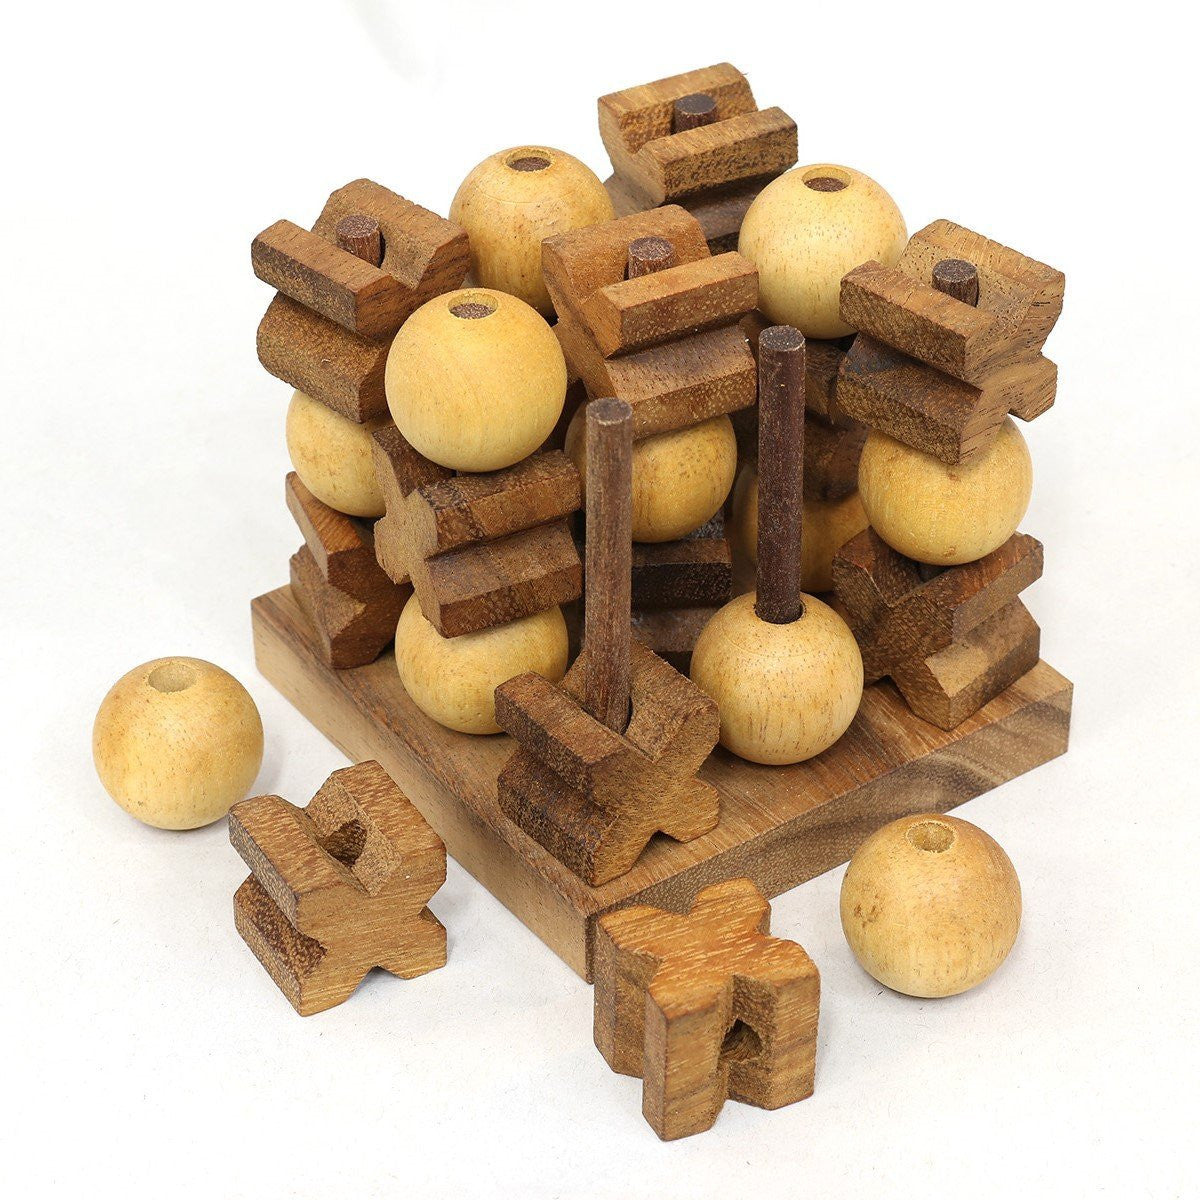 Asterisk 3D Wooden Puzzle With Free Worldwide-3681